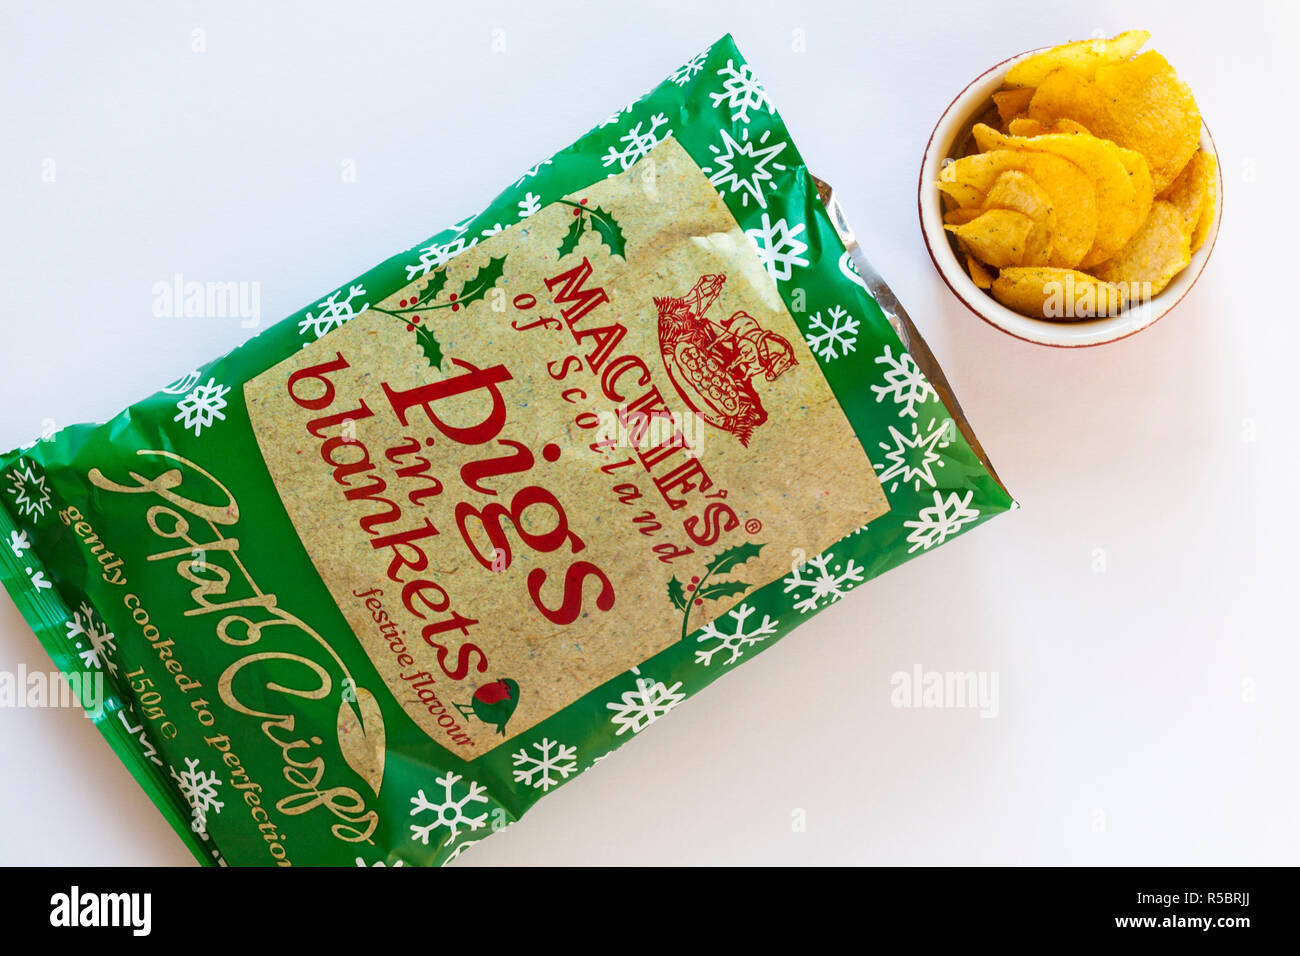 open packet of Mackie's of Scotland Pigs in Blankets festive flavour Potato Crisps with crisps in bowl set on white background - ready for Christmas - Stock Image